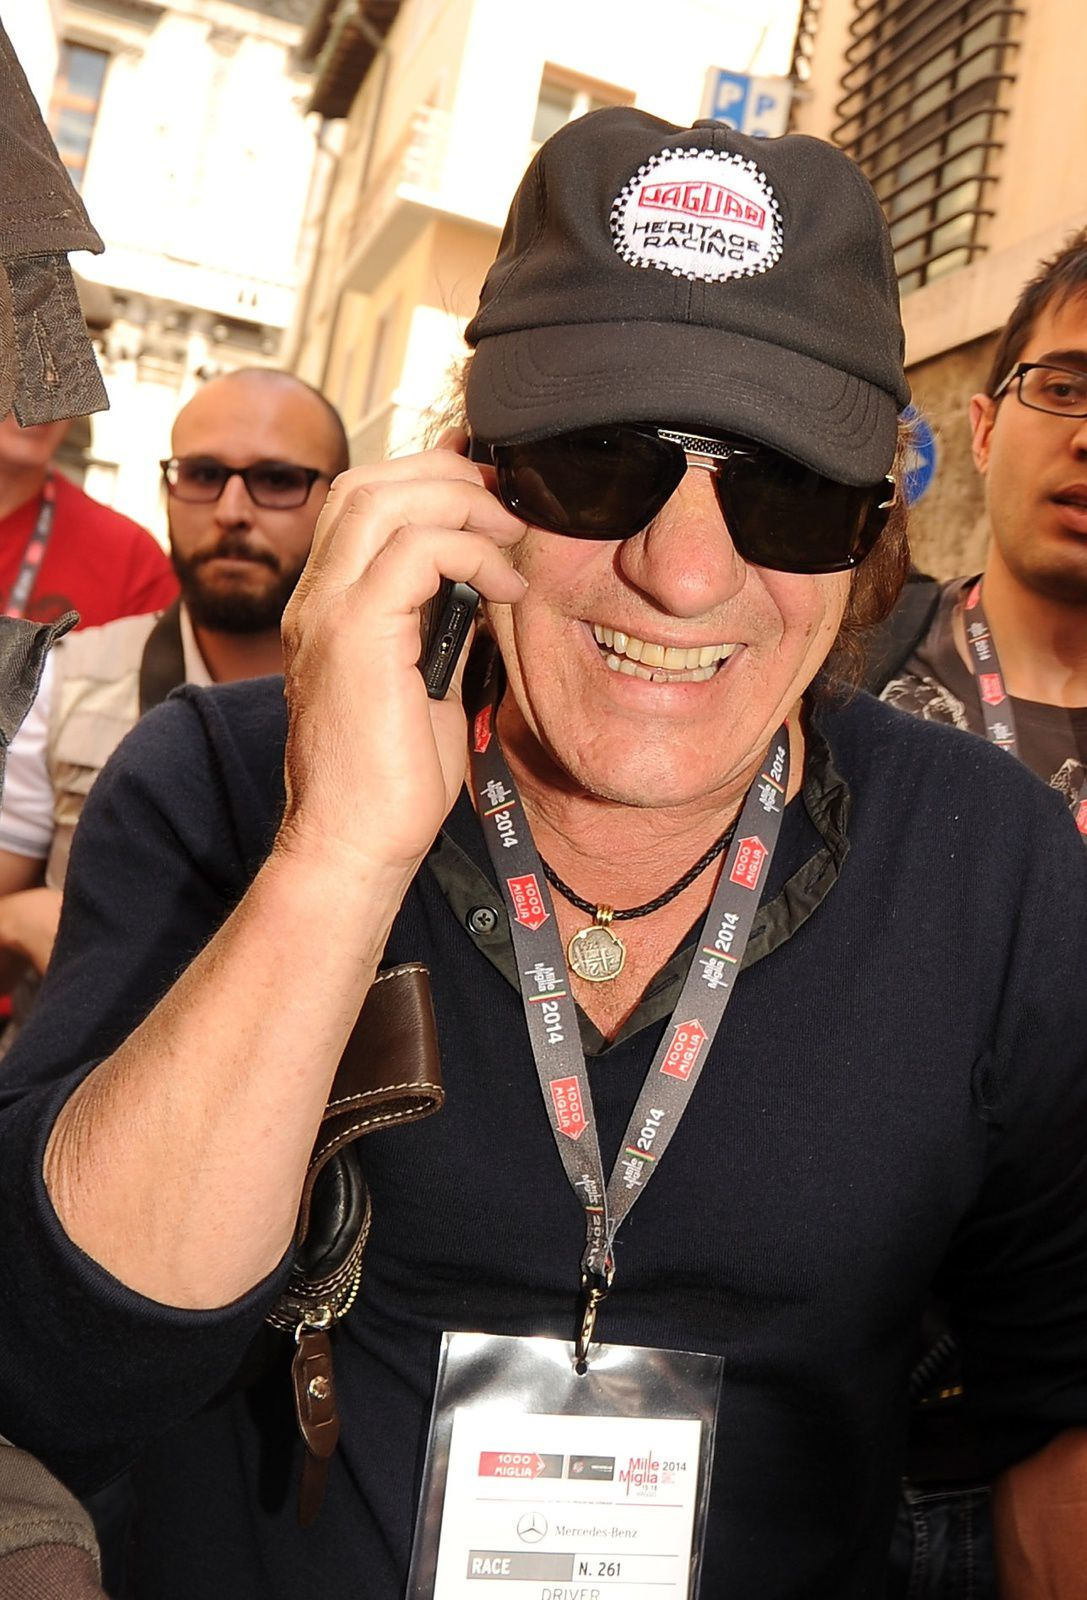 BRESCIA, ITALY - MAY 15 Brian Johnson attends Mille Miglia 2014, 1000 Miles Historic Road Race on May 15, 2014 in Brescia, Italy Photo by Pier Marco Tacca - Getty Images